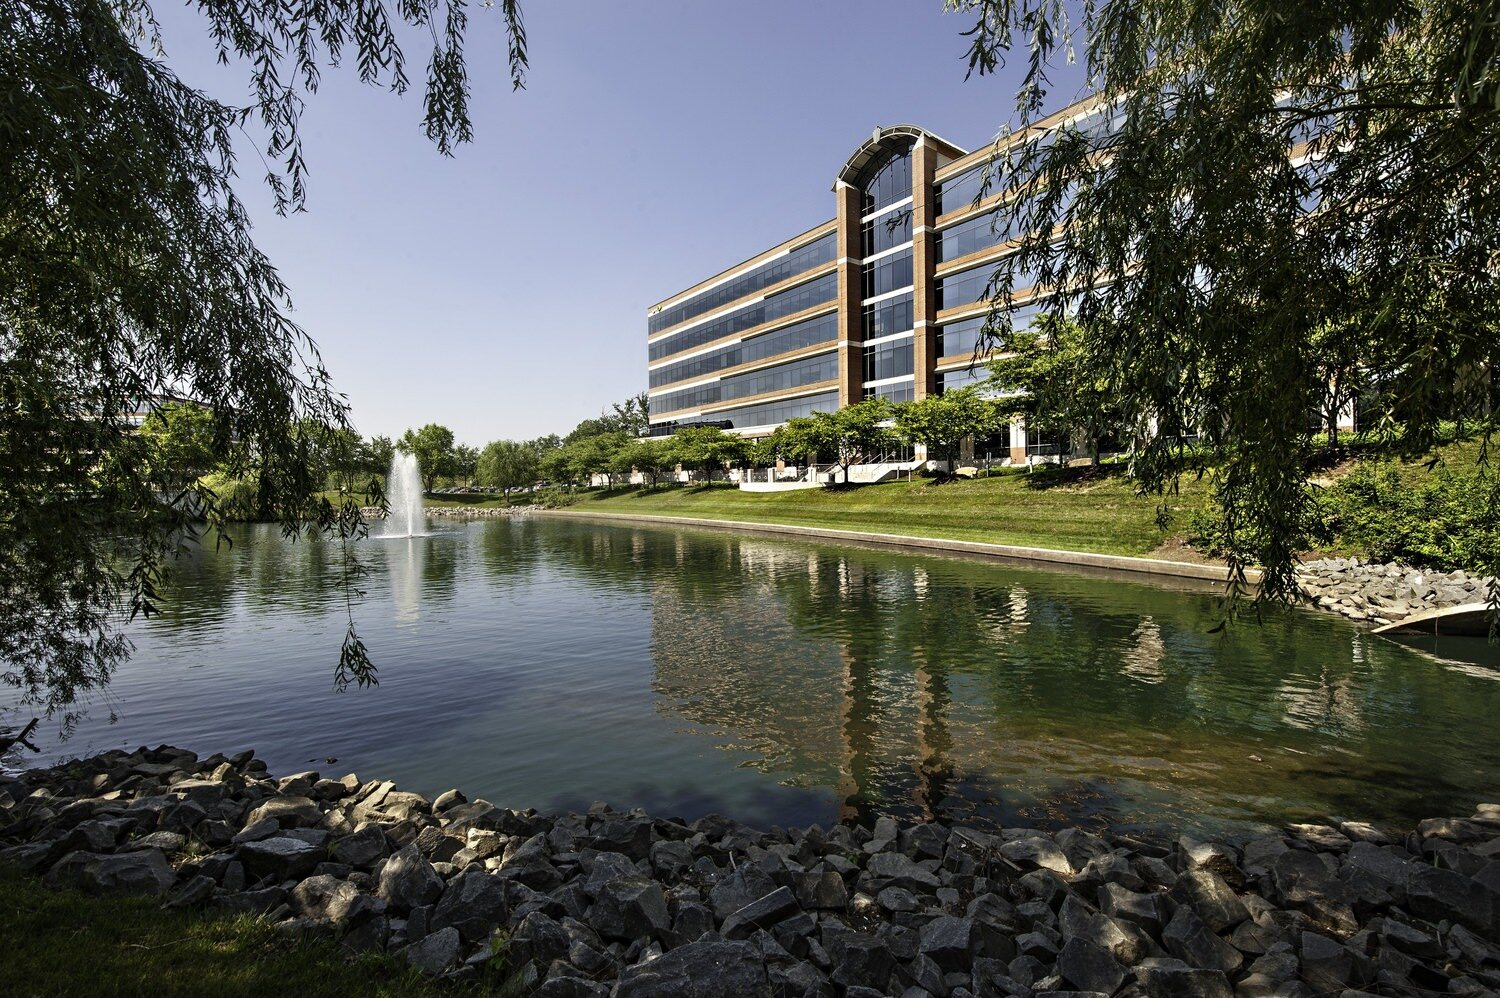 A big office building that is located next to a small lake that has a fountain in the middle of it.